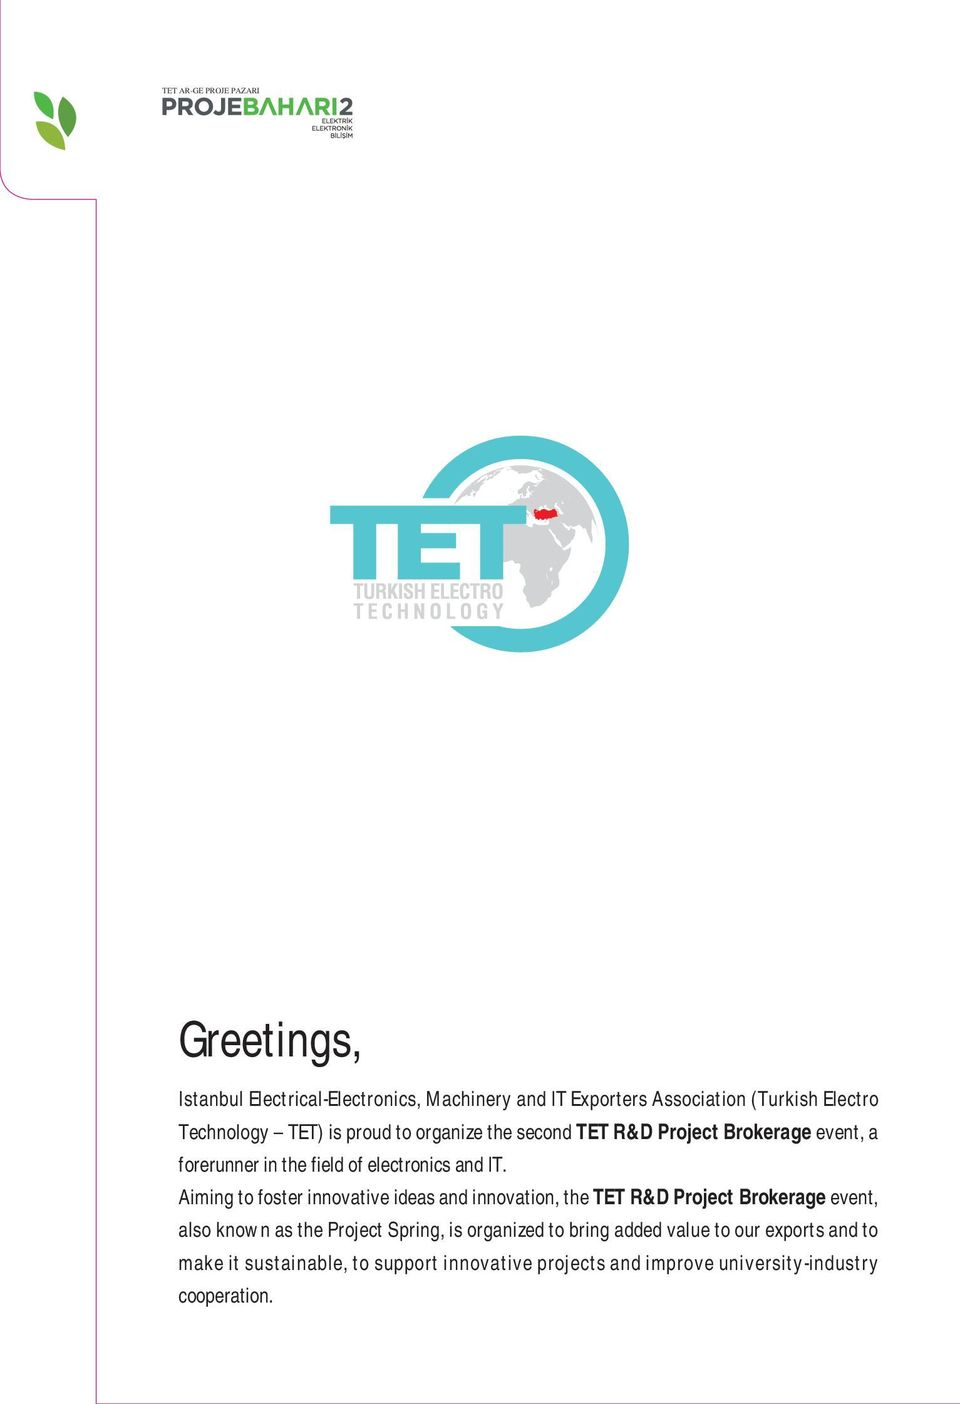 Aiming to foster innovative ideas and innovation, the TET R&D Project Brokerage event, also known as the Project Spring, is